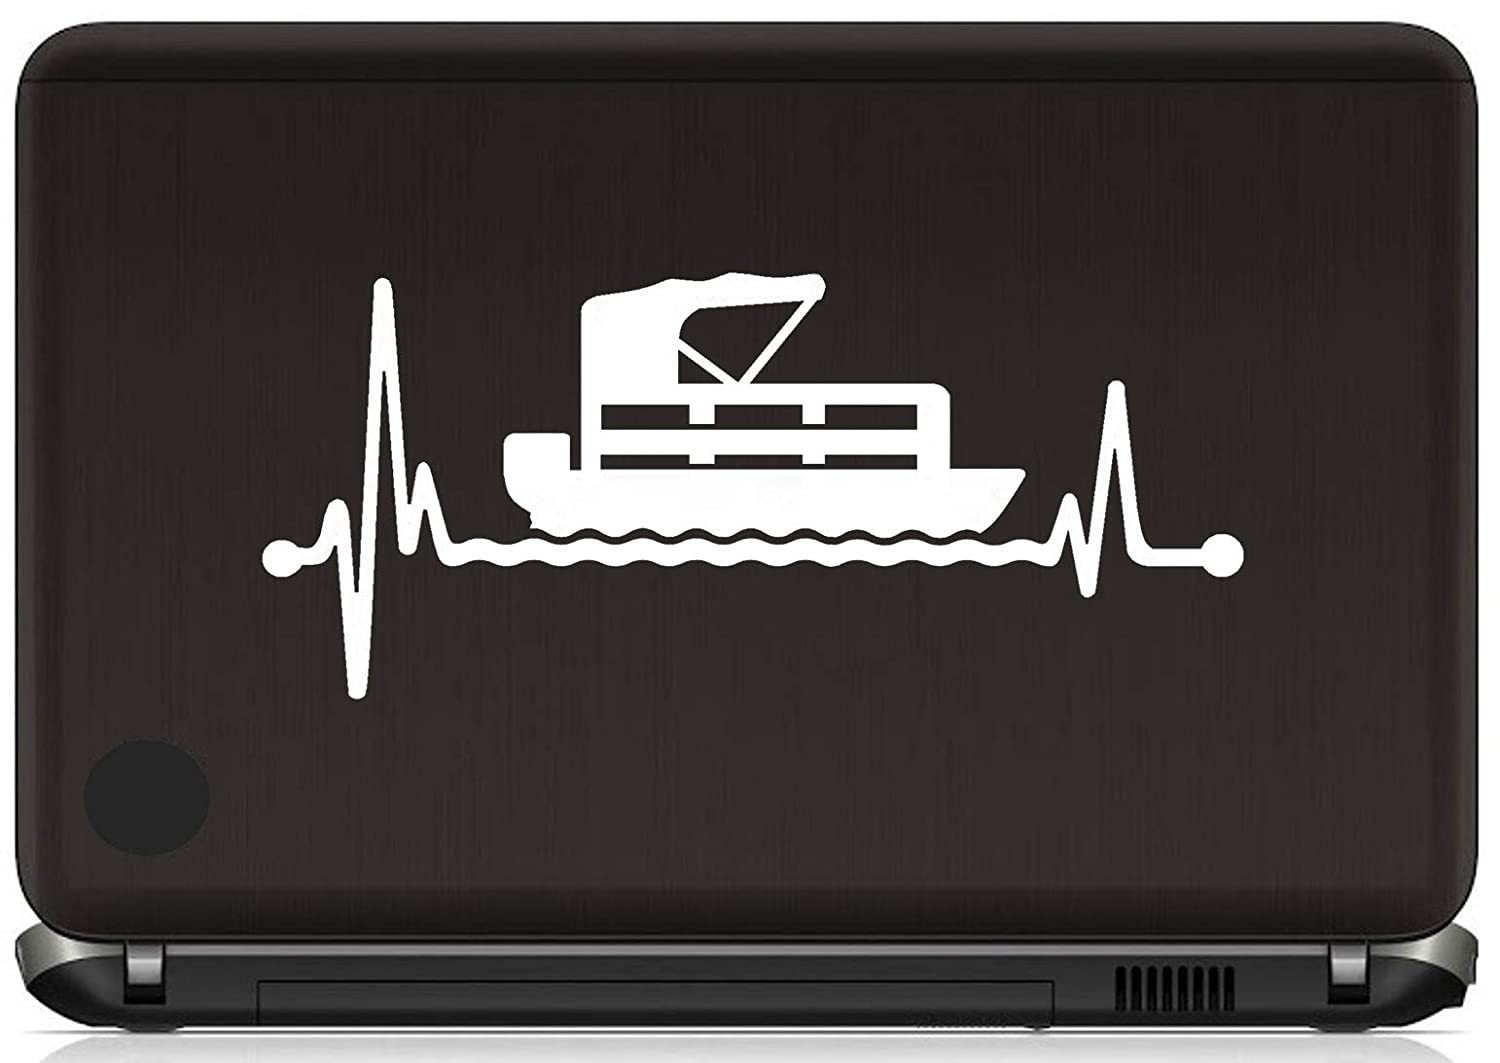 Pontoon Heartbeat Lifeline Decal Sticker Lake Boating Accessories Party Barge Boat BG 526